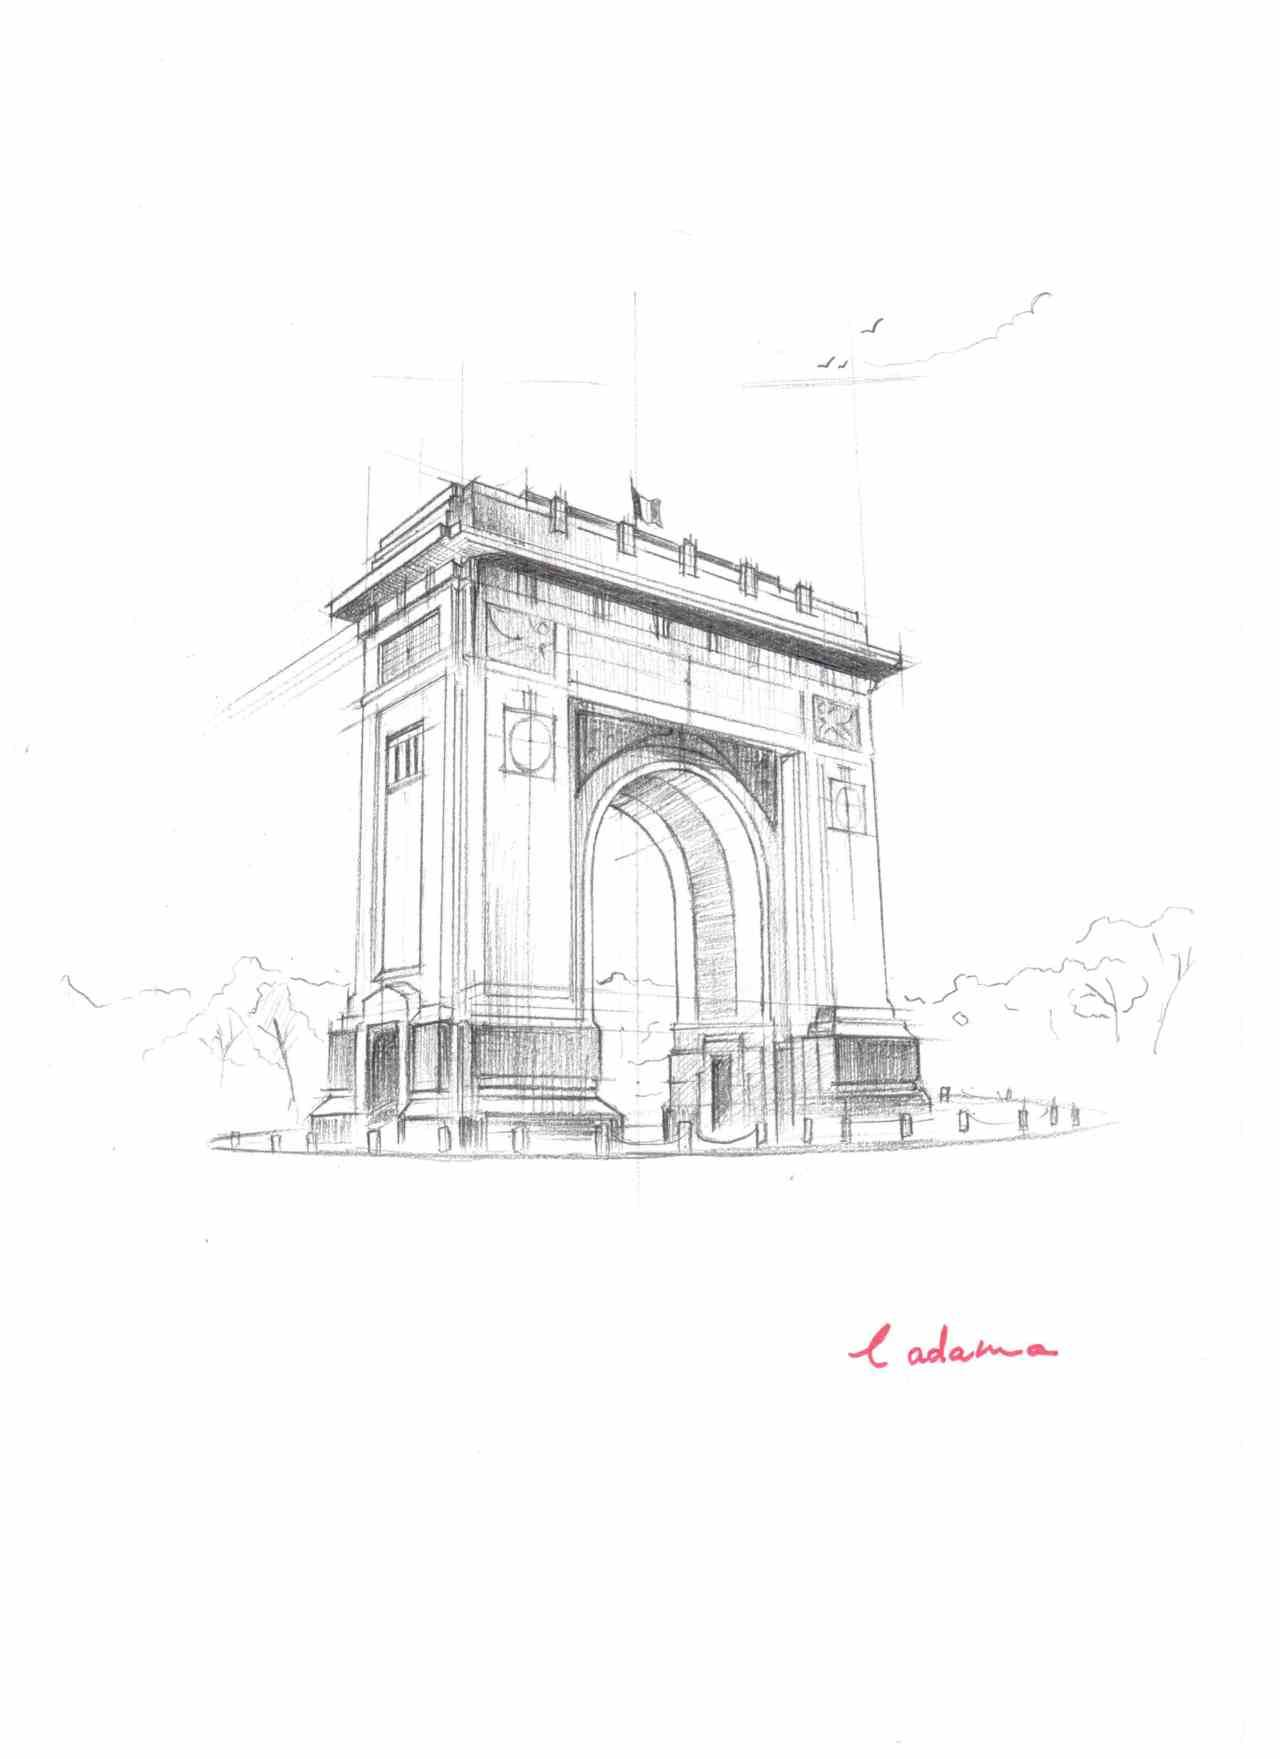 Arch of Triumf, Bucharest, Romania. Pencil sketch on 120g/mp A4 paper.